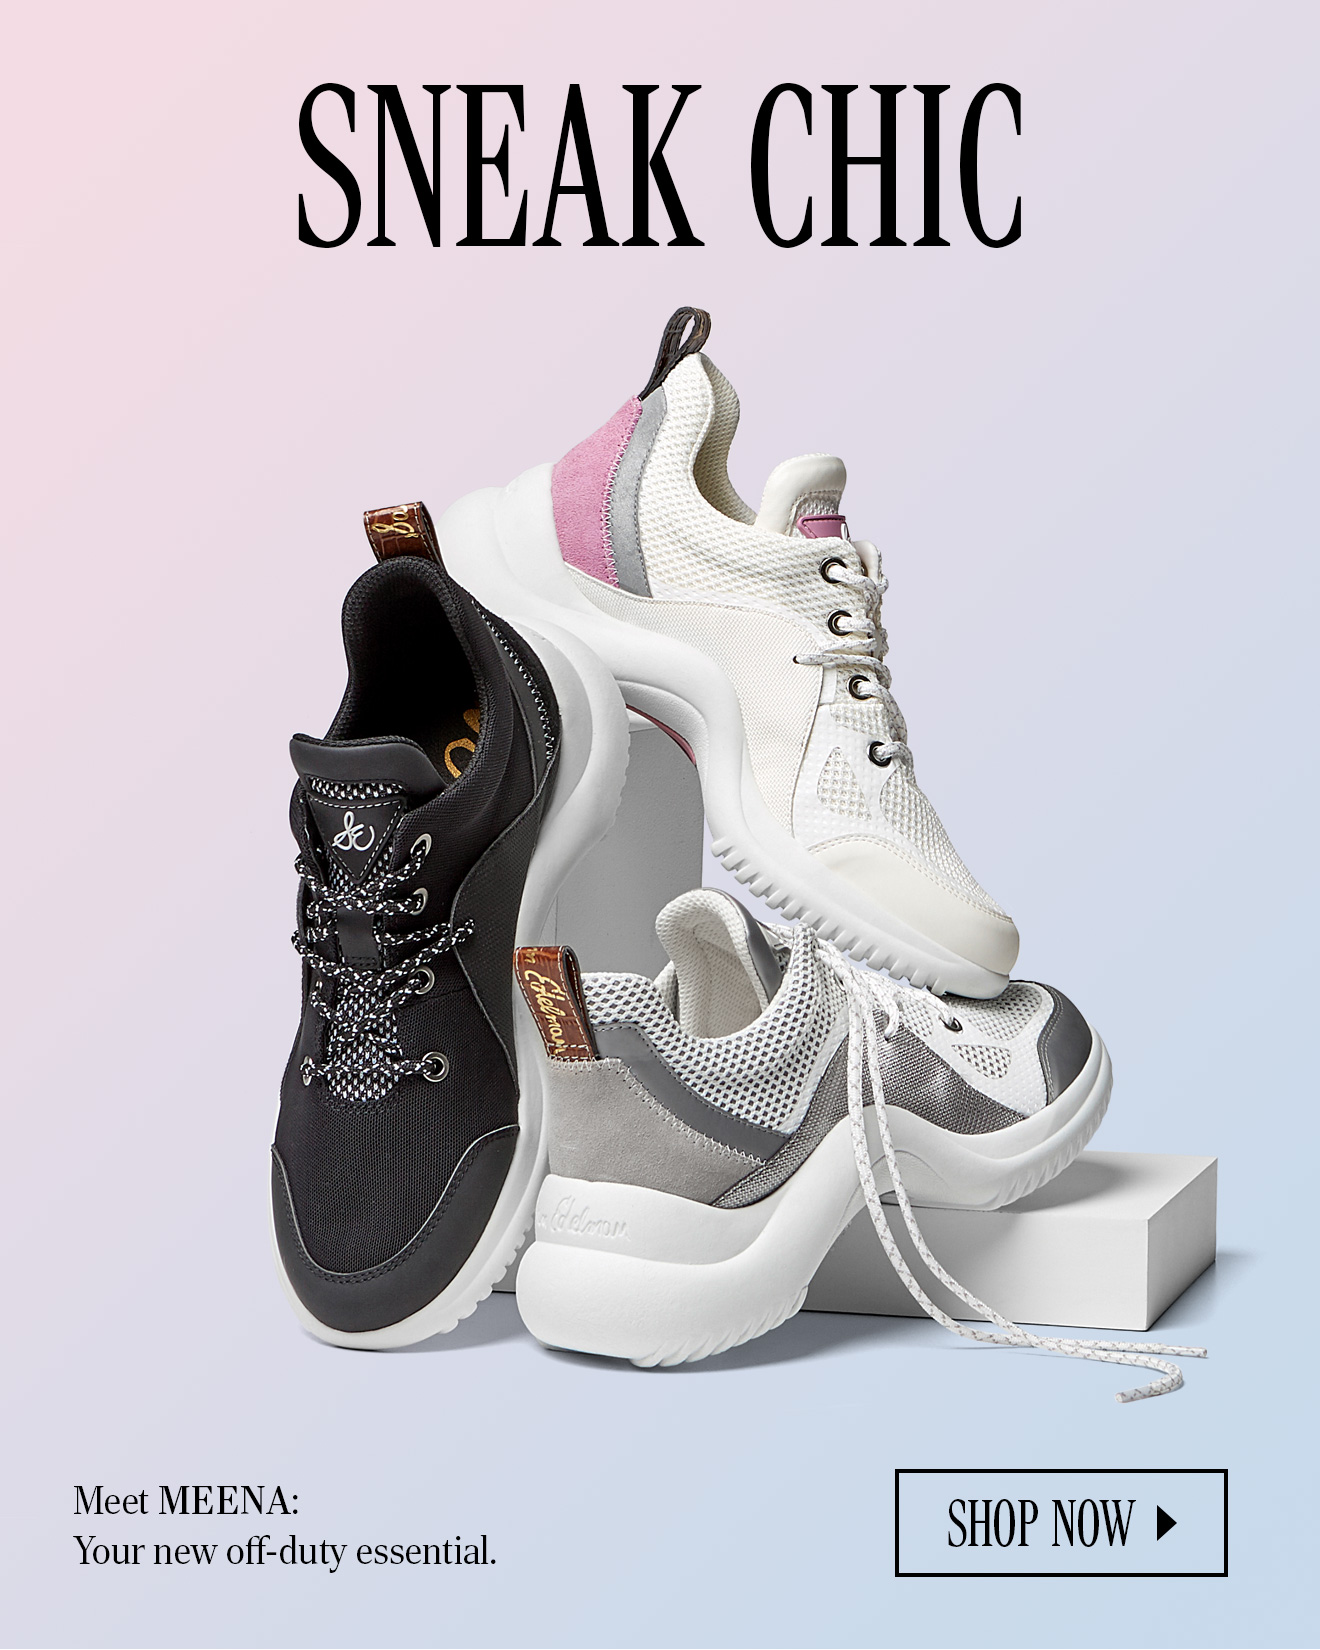 65c1d1e8cda4 Meet MEENA  Your new off-duty essential. SHOP NOW. MEENA SNEAKER